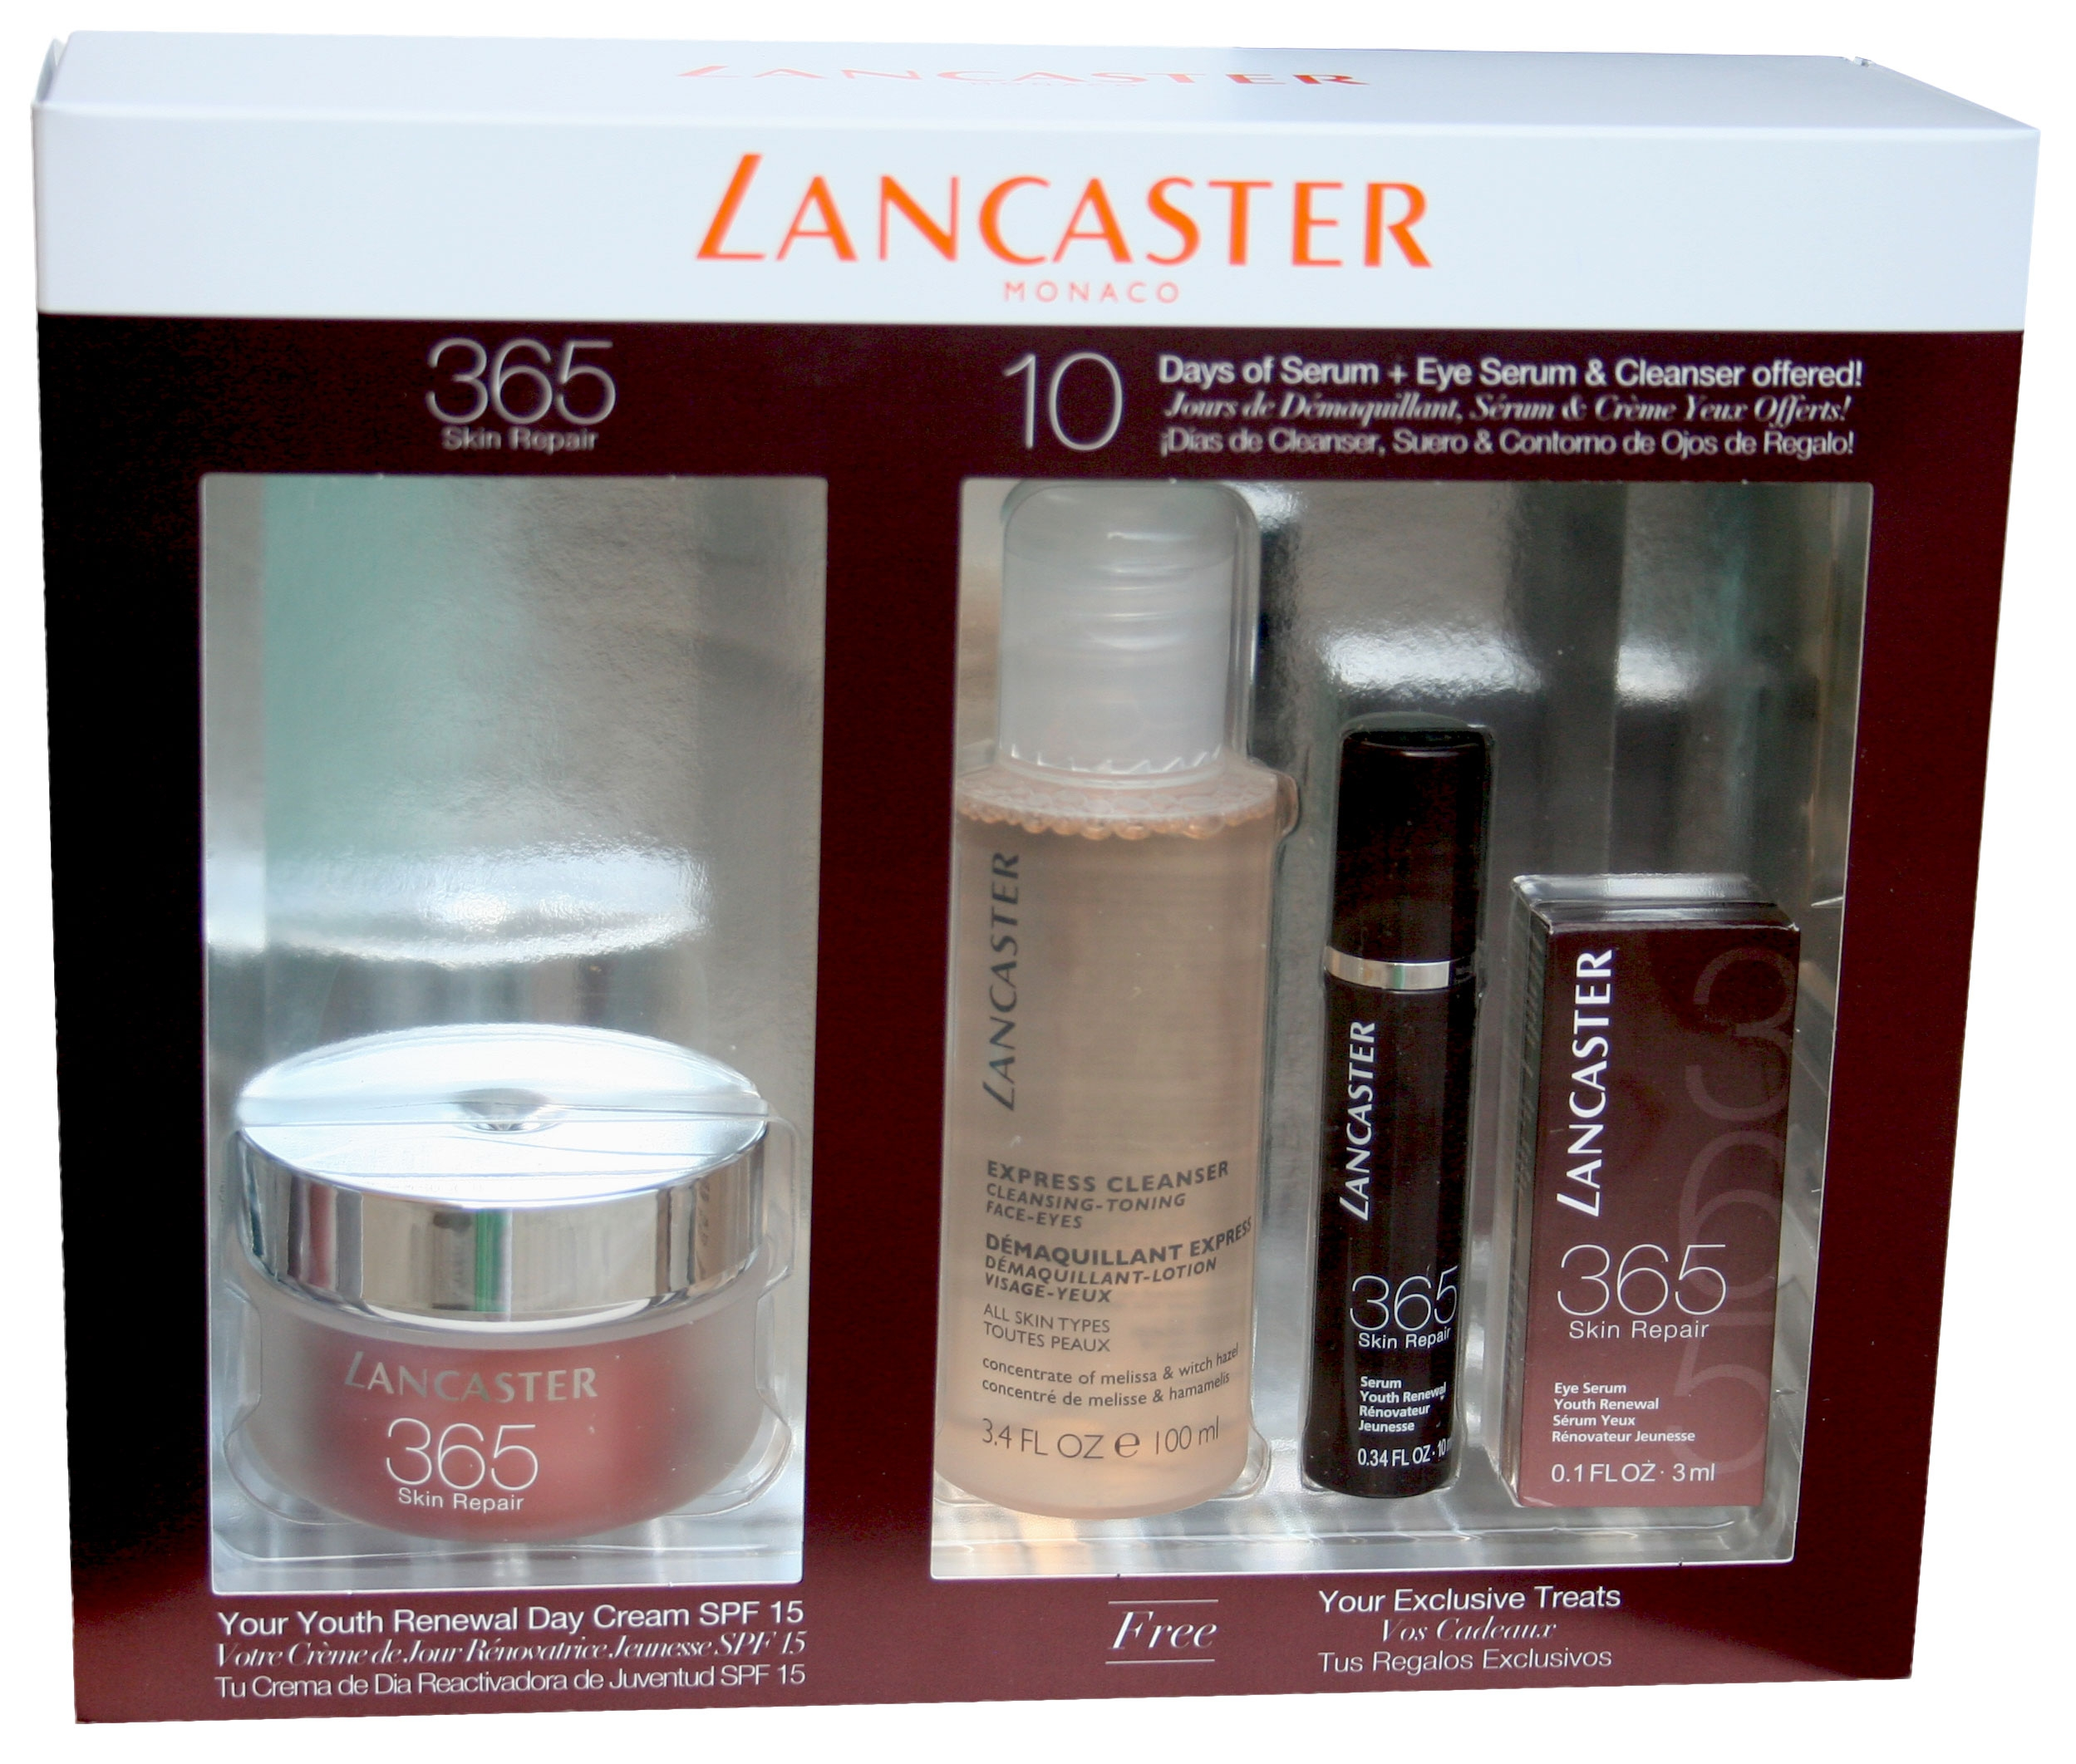 LANCASTER 365 SKIN REPAIR CREMA DIA 50 ML SET REGALO